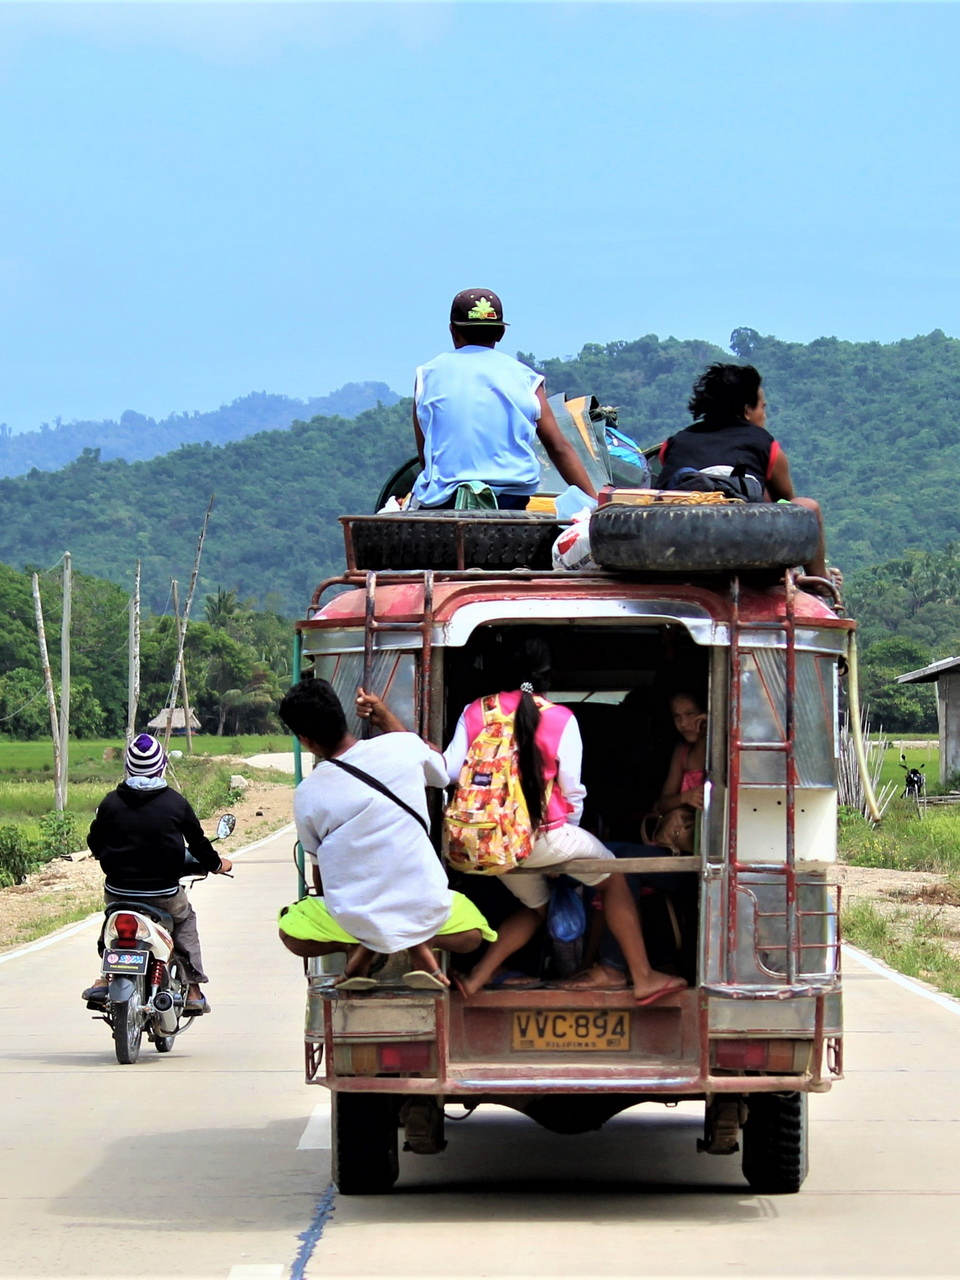 a small old bus full of people with two men sitting on top, a woman sitting at the back with the doors open and another man hanging onto the back. A man on a motorcycle is riding next to it on a small paved road toward tree-covered mountains